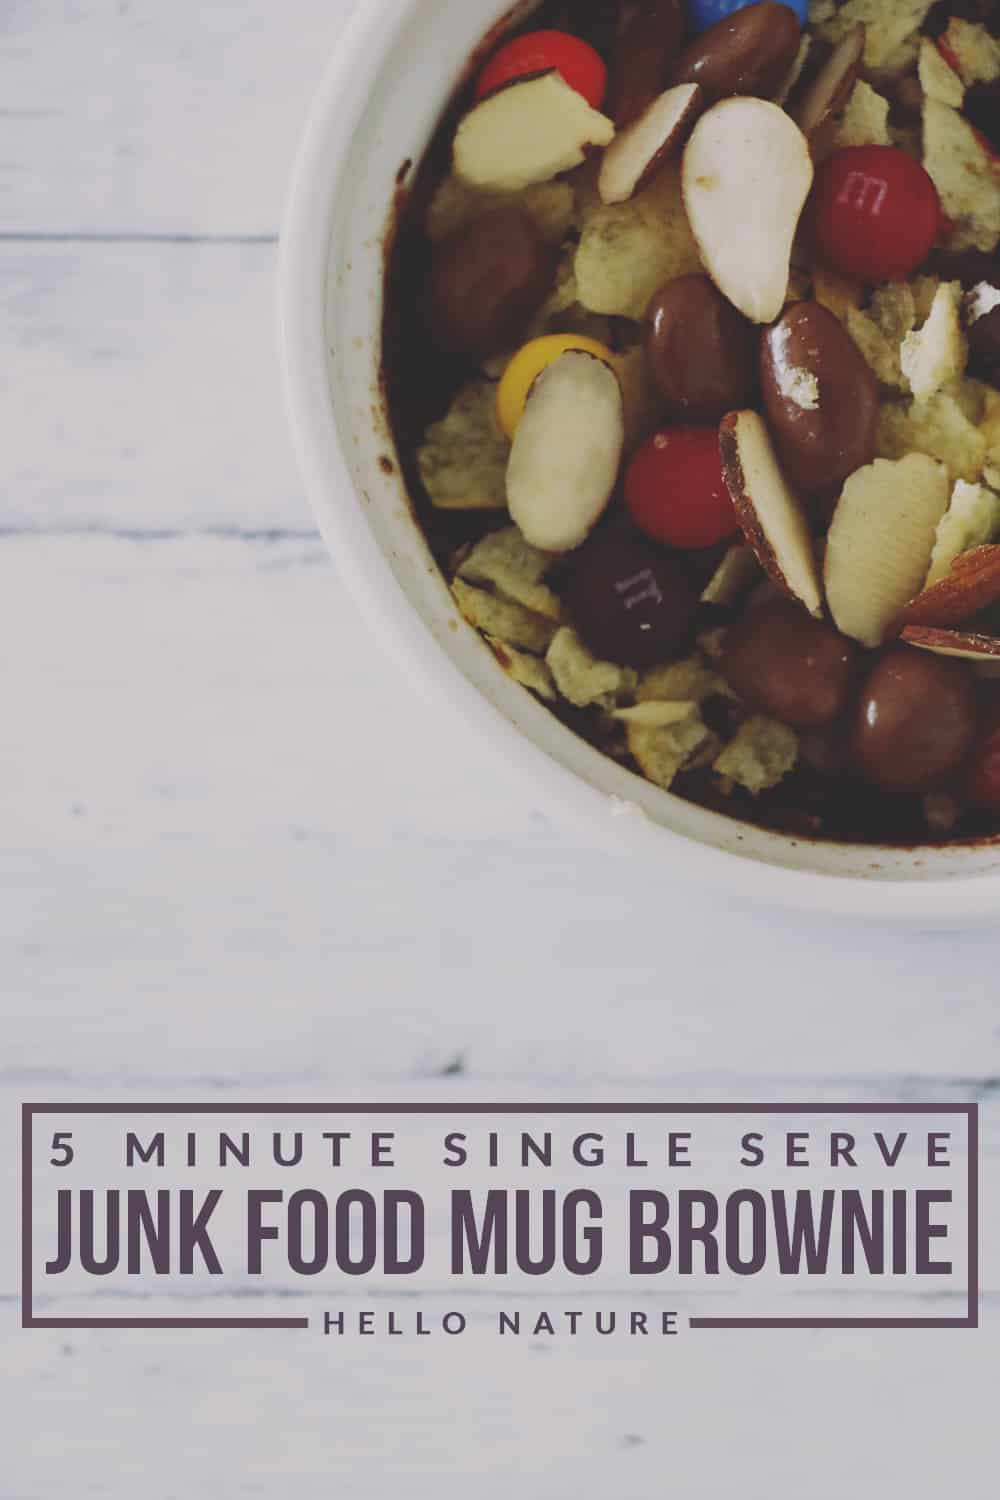 Craving something sweet and salty? This 5 minute single serve junk food mug brownie is the perfect indulgent treat for you to enjoy!